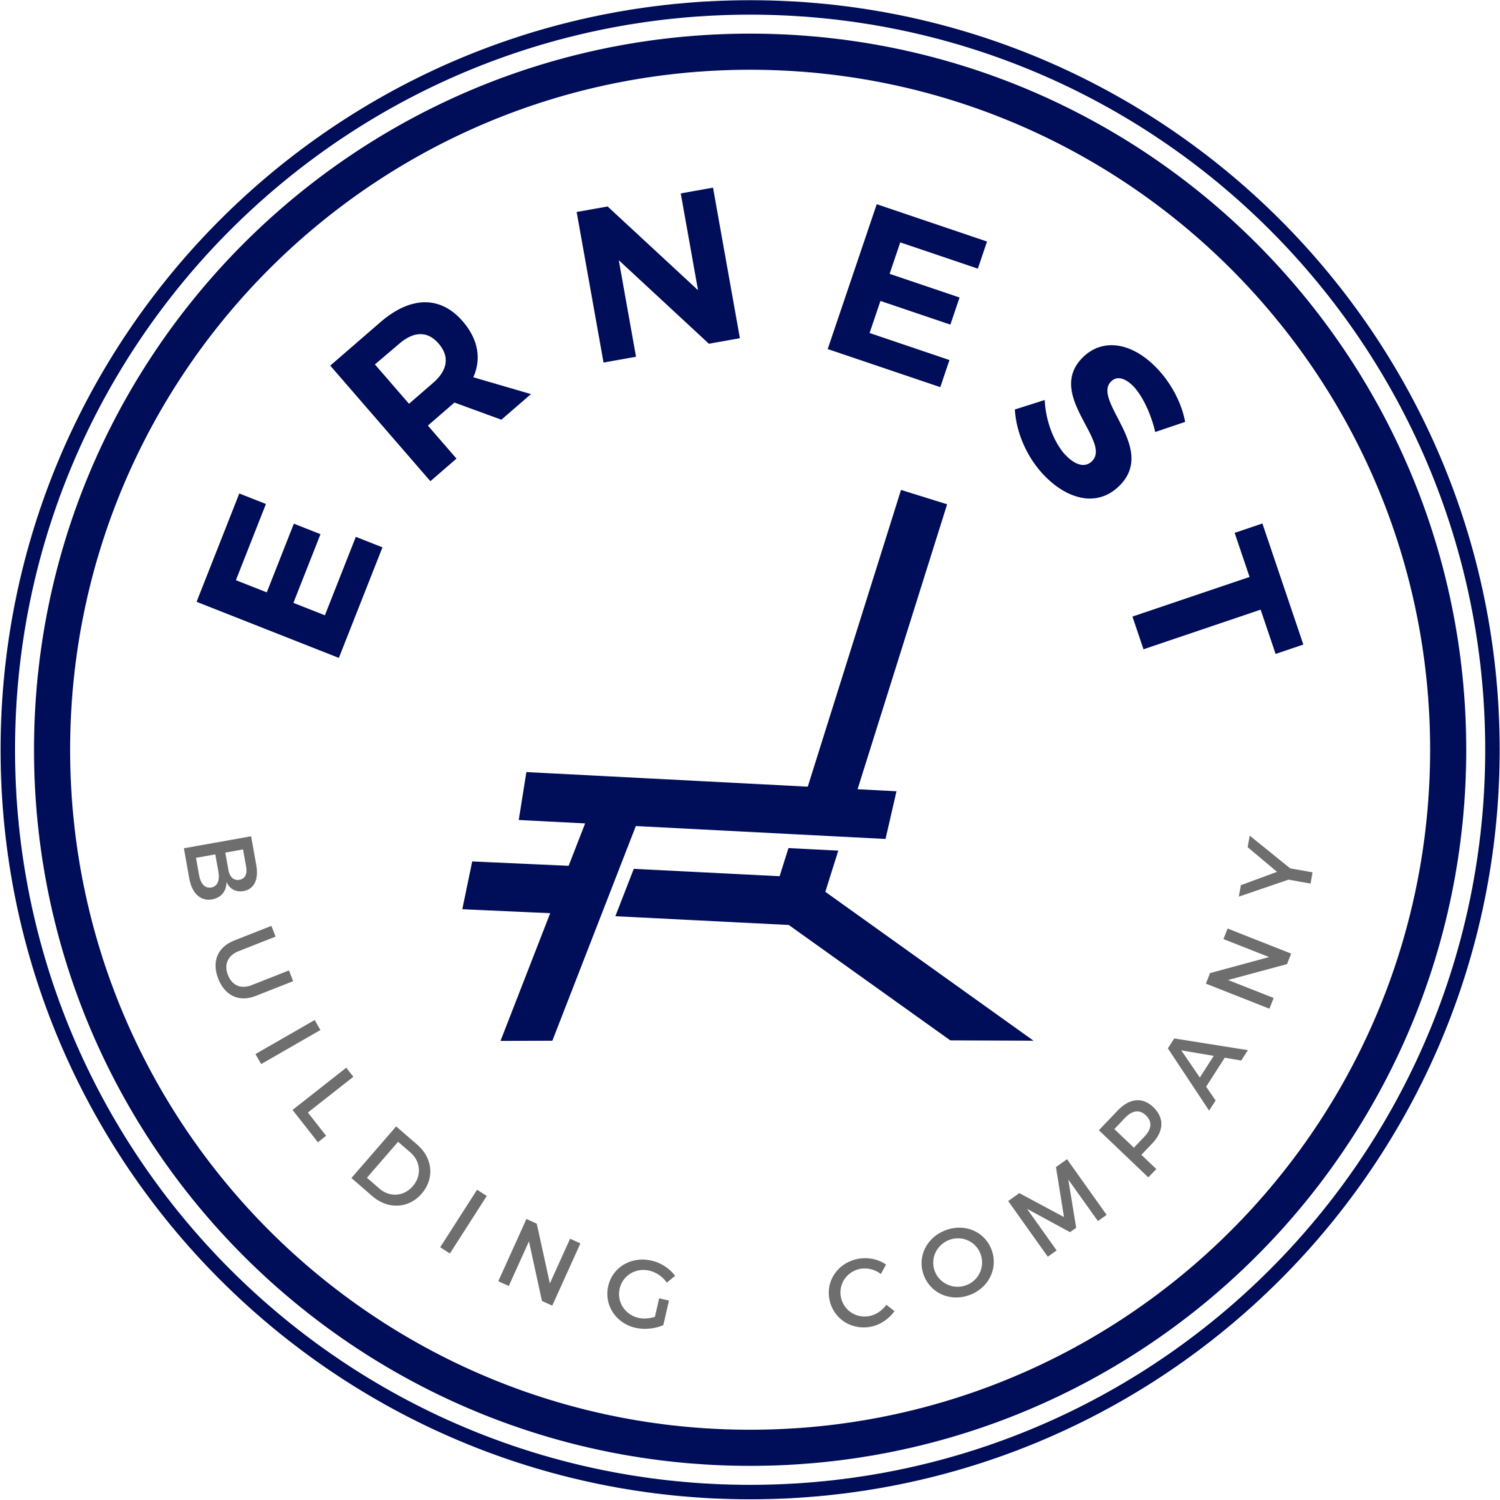 Ernest Building Company